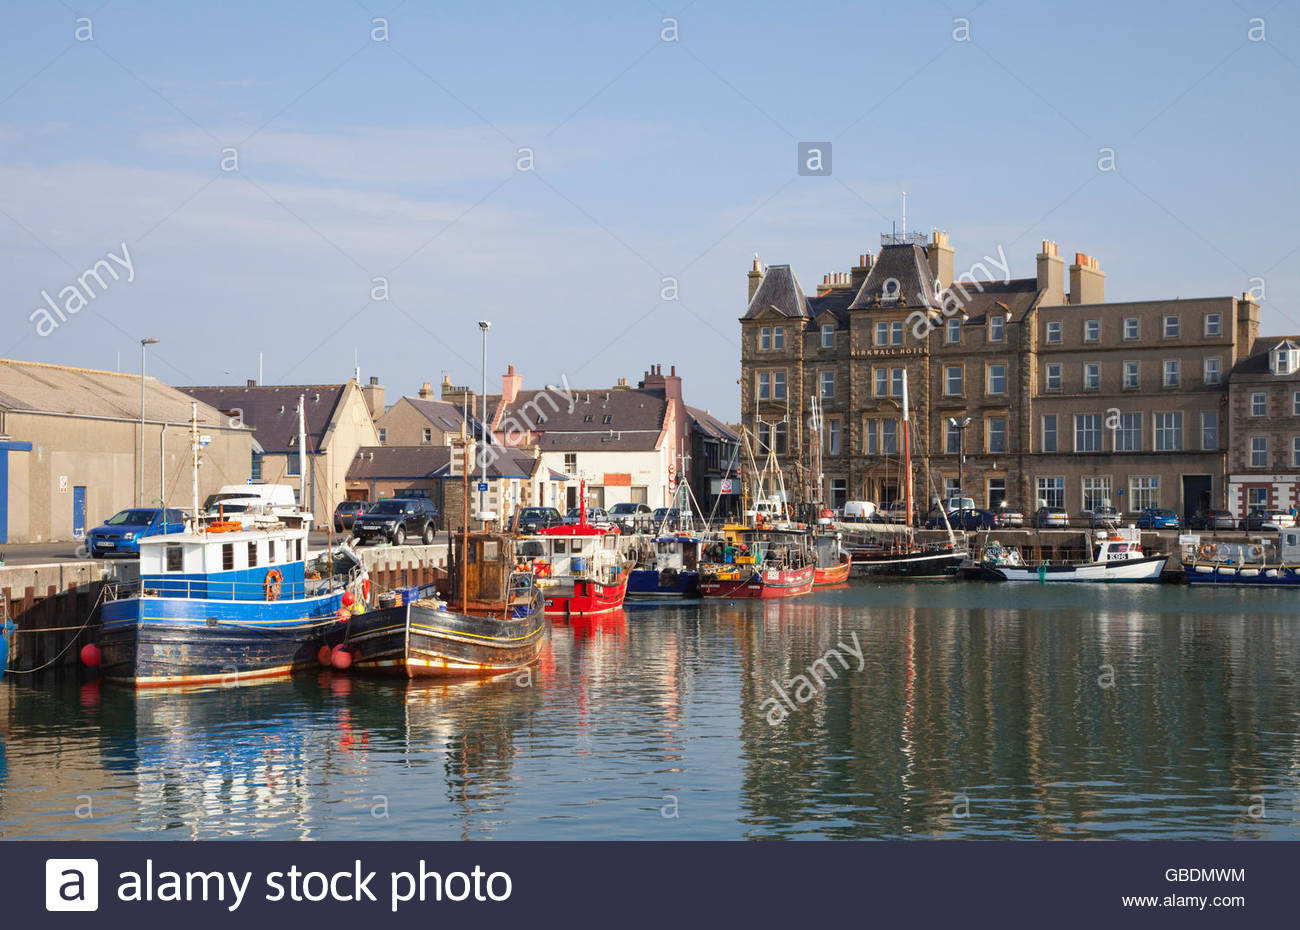 Fishing Boats moored in the harbour at Kirkwall with the Kirkwall Hotel visible, Mainland, Orkney, Scotland. - Stock Image